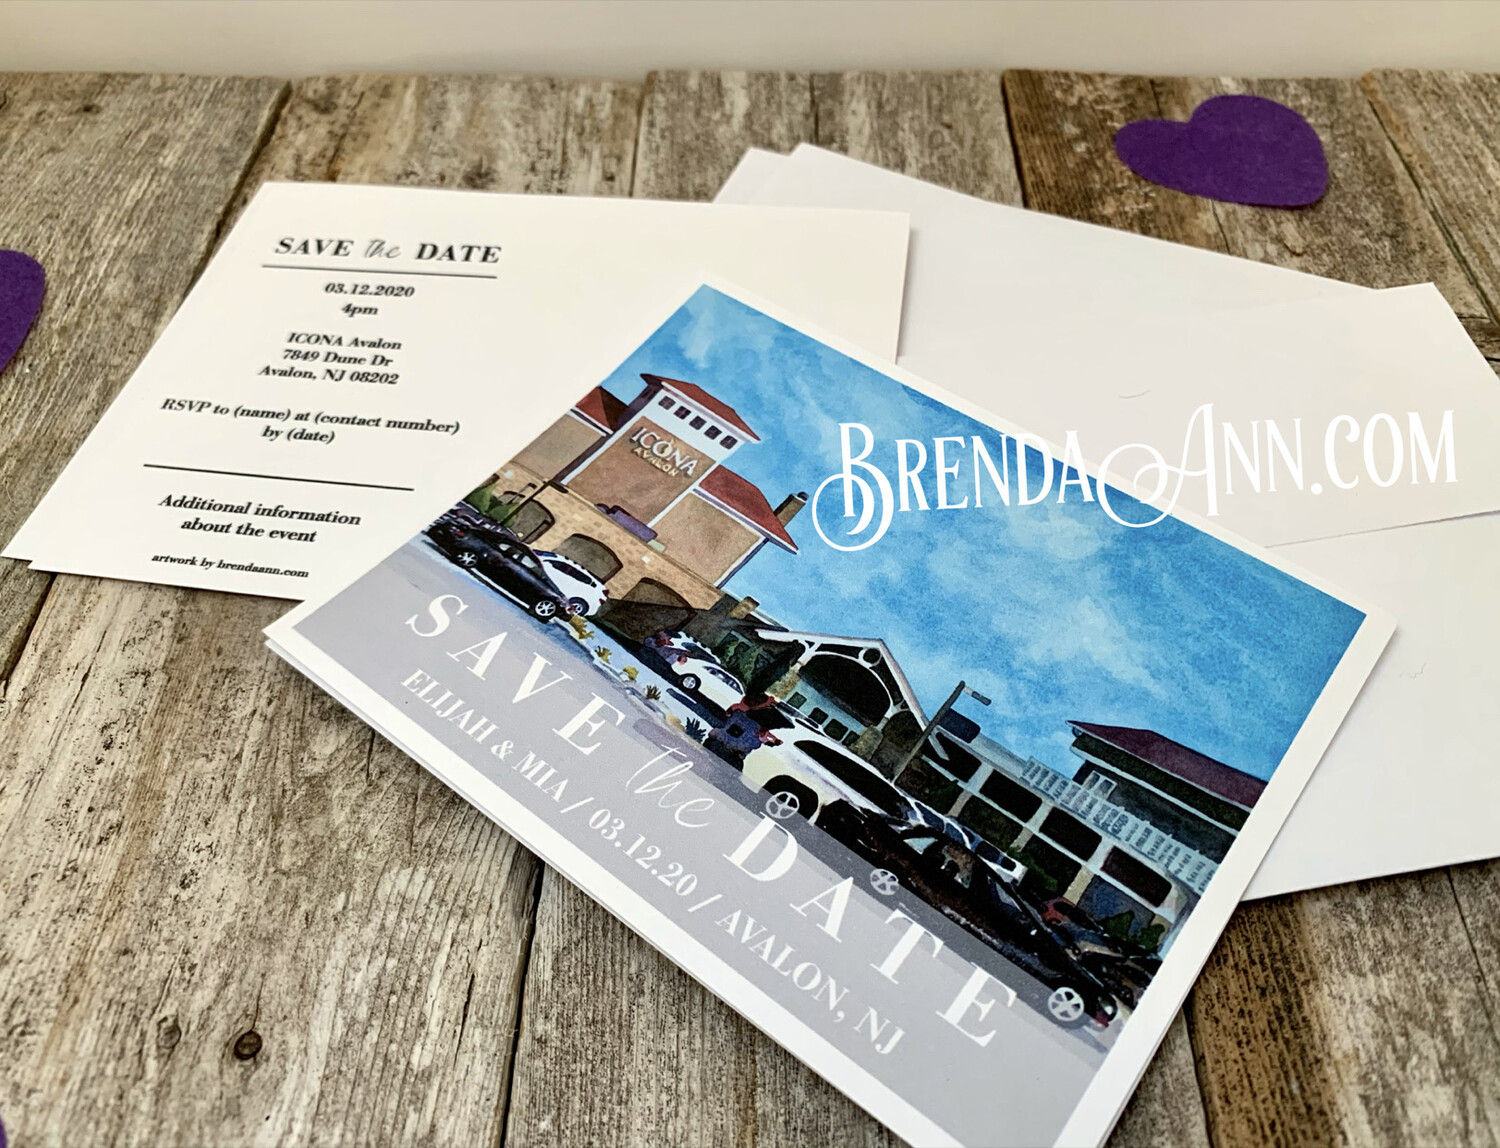 Wedding Save the Date Cards - ICONA Avalon in Avalon NJ - Watercolor by Brenda Ann